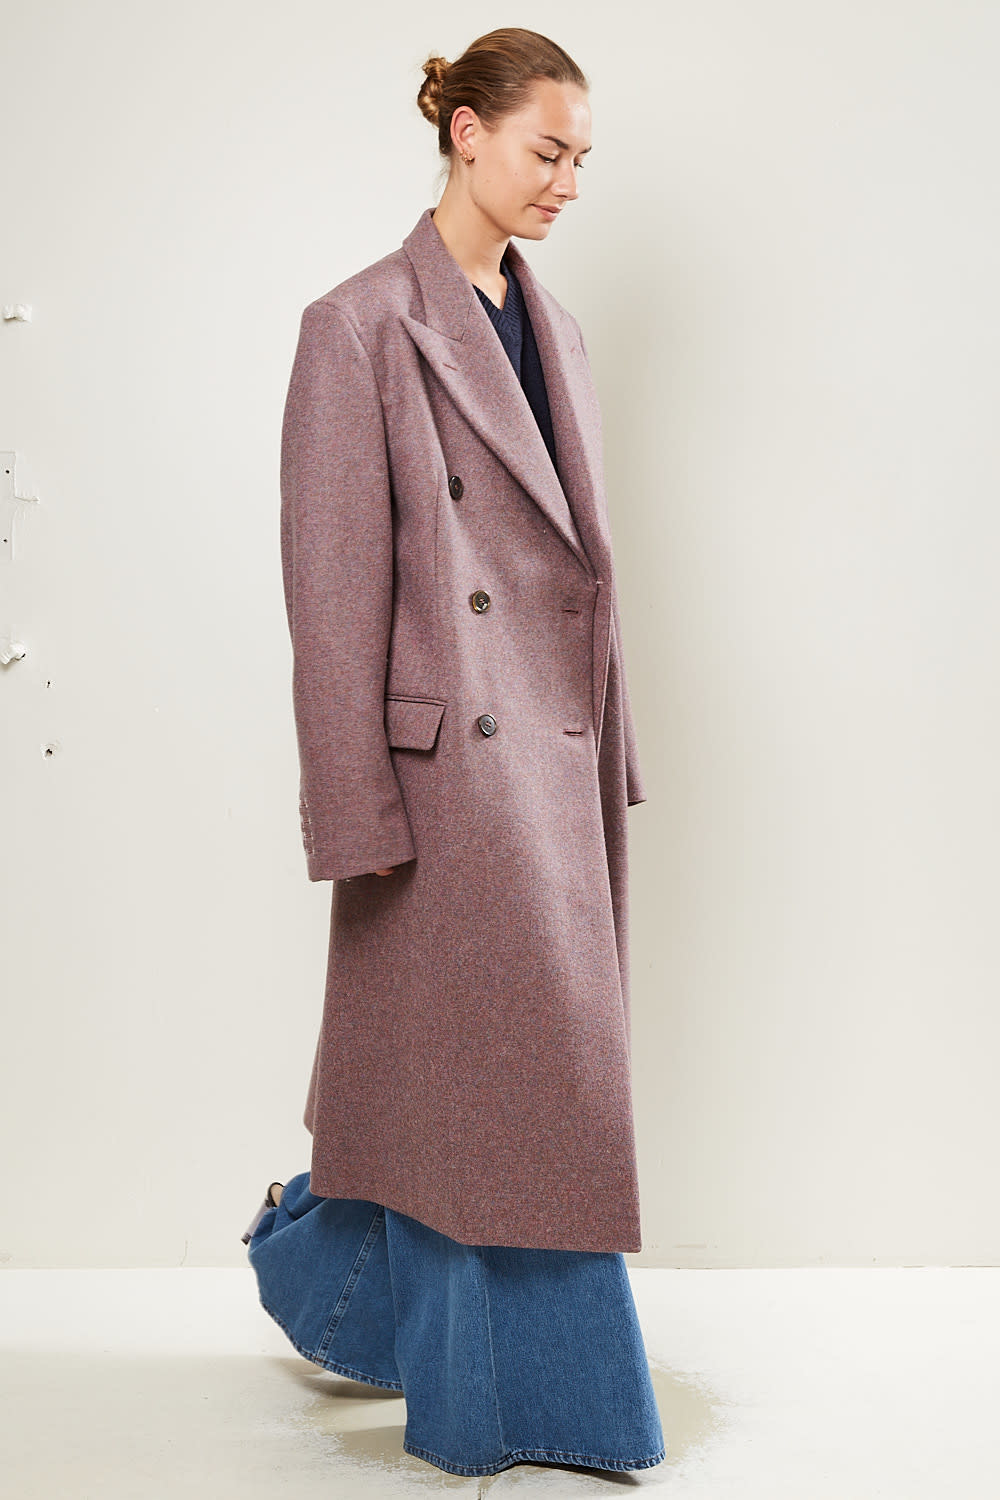 Maison Margiela double-breasted tailored wool coat